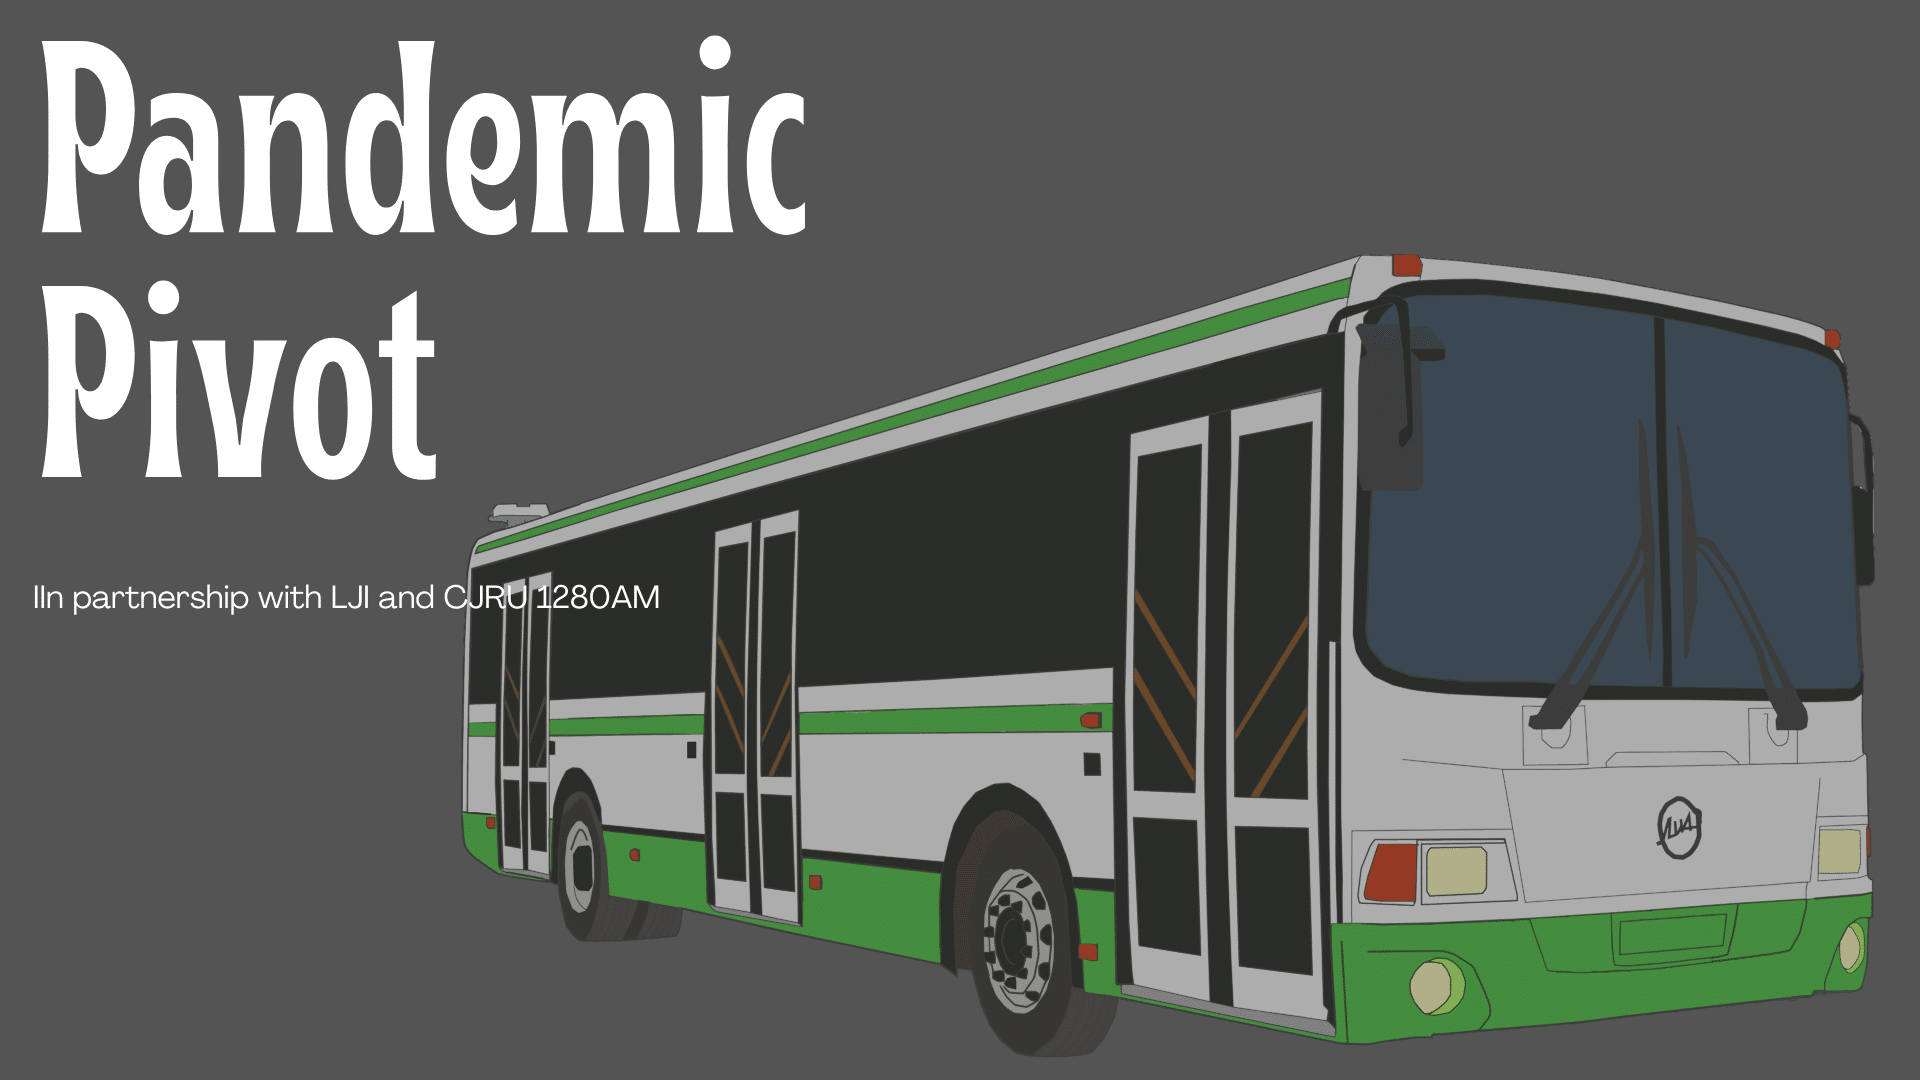 The TTC aims to do more with less. Graphic of bus and 'pandemic pivot' lettering